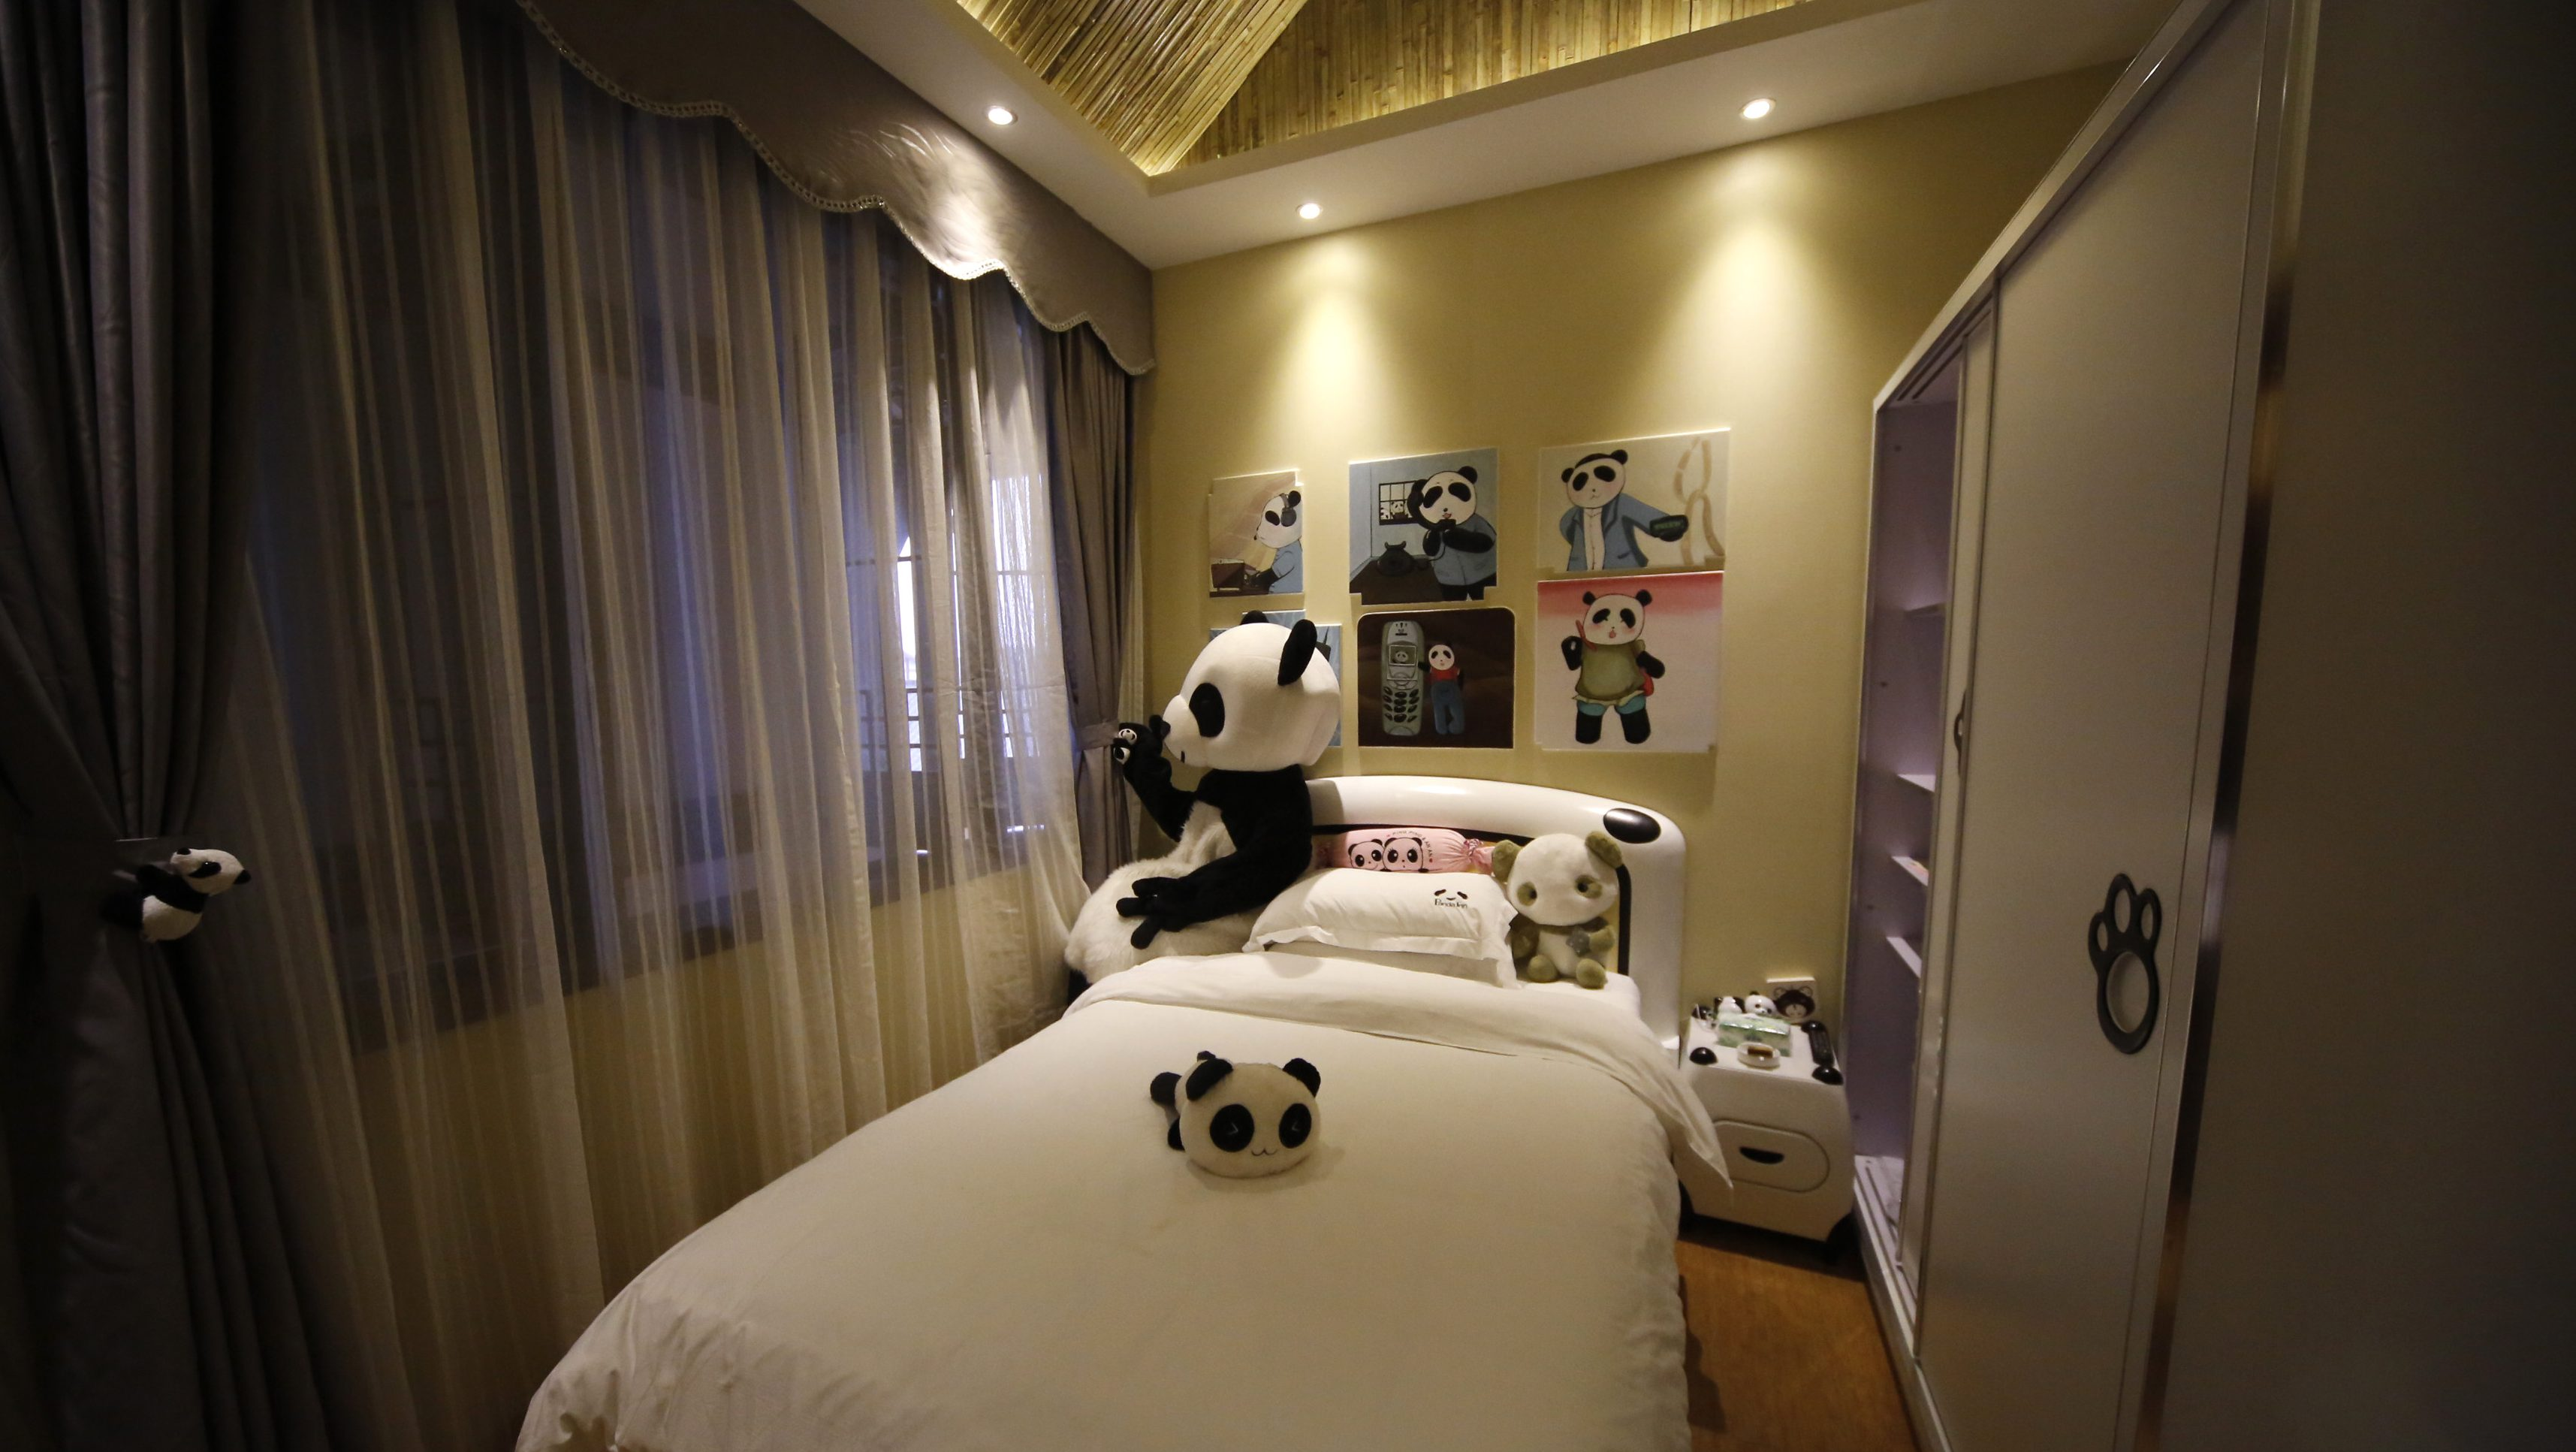 An employee dressed in a panda costume poses for a photo during the soft opening of a panda-themed hotel at the foot of Emei Mountain, Southwest China's Sichuan province, February 25, 2013. According to local media, the hotel is the first panda-themed hotel in the world and will officially open in May with room rates from 300 to 500 yuan ($48 to $80) per night. Picture taken February 25, 2013. REUTERS/China Daily (CHINA - Tags: ANIMALS SOCIETY) CHINA OUT. NO COMMERCIAL OR EDITORIAL SALES IN CHINA - GM1E92Q1RGO01